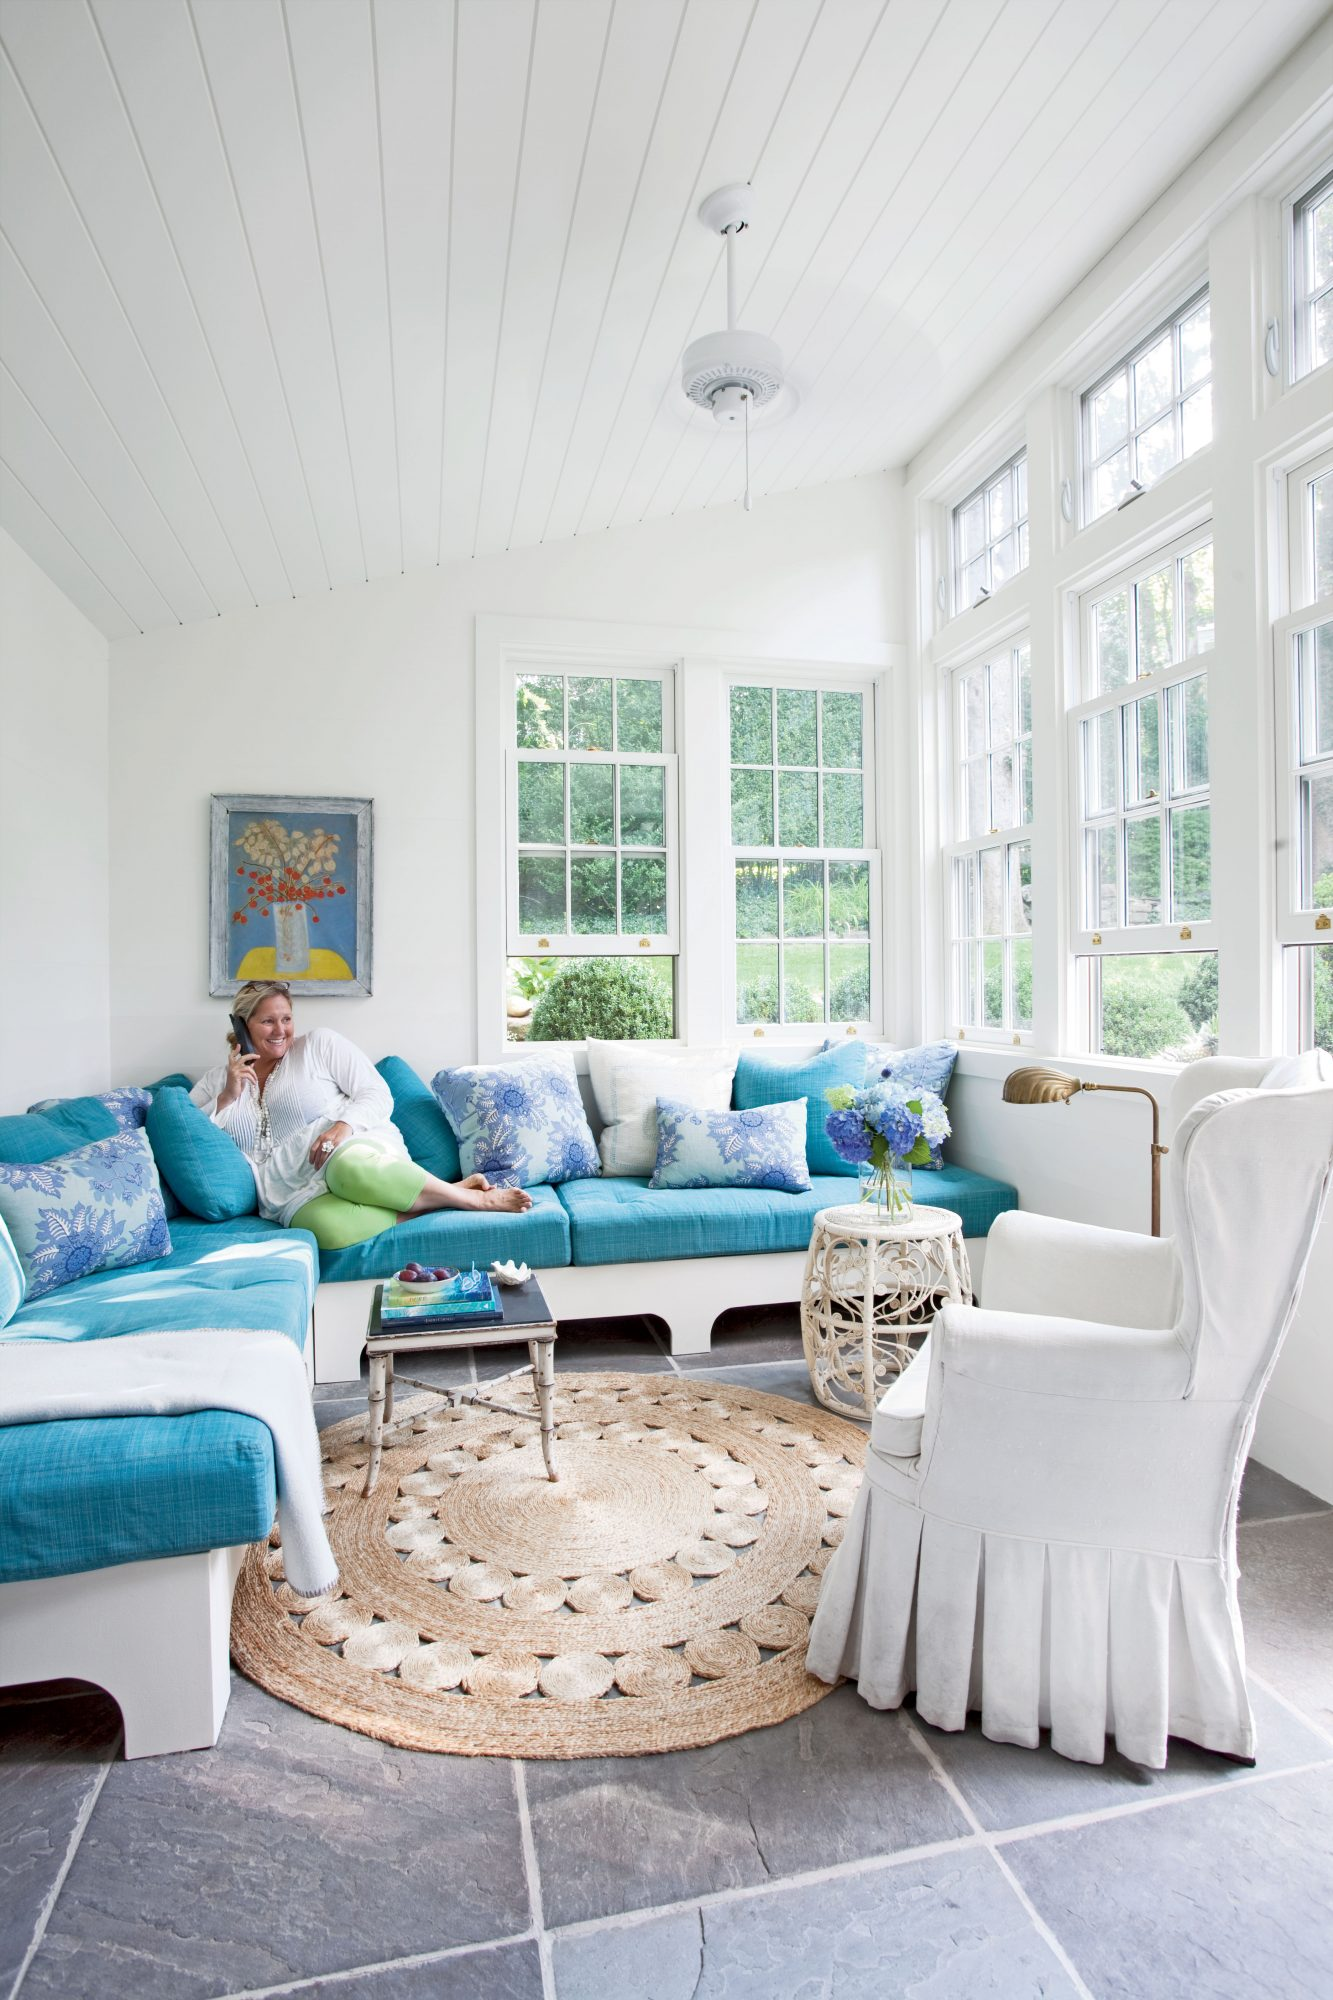 The homeowner uses her sunroom to curl up with a book or hang with friends, so comfy seating was a must. She had only an 11- by 13-foot area with which to work so she had her contractor build two benches for a space-saving and less expensive option than a sectional. She kept the room cheery and bright with fresh white paint on the walls and ceiling and bright blue cushions.